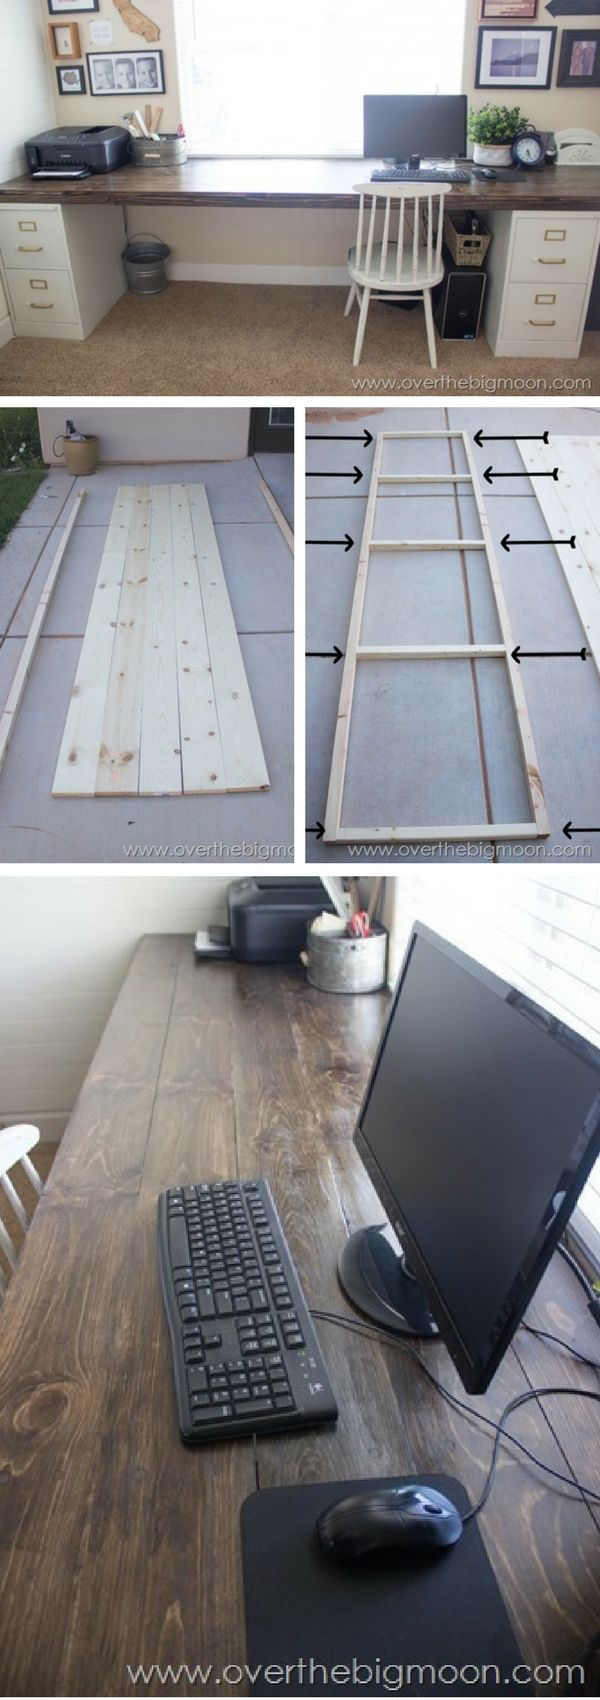 Check out the tutorial how to build a DIY desk from file cabinets and wood planks @istandarddesign